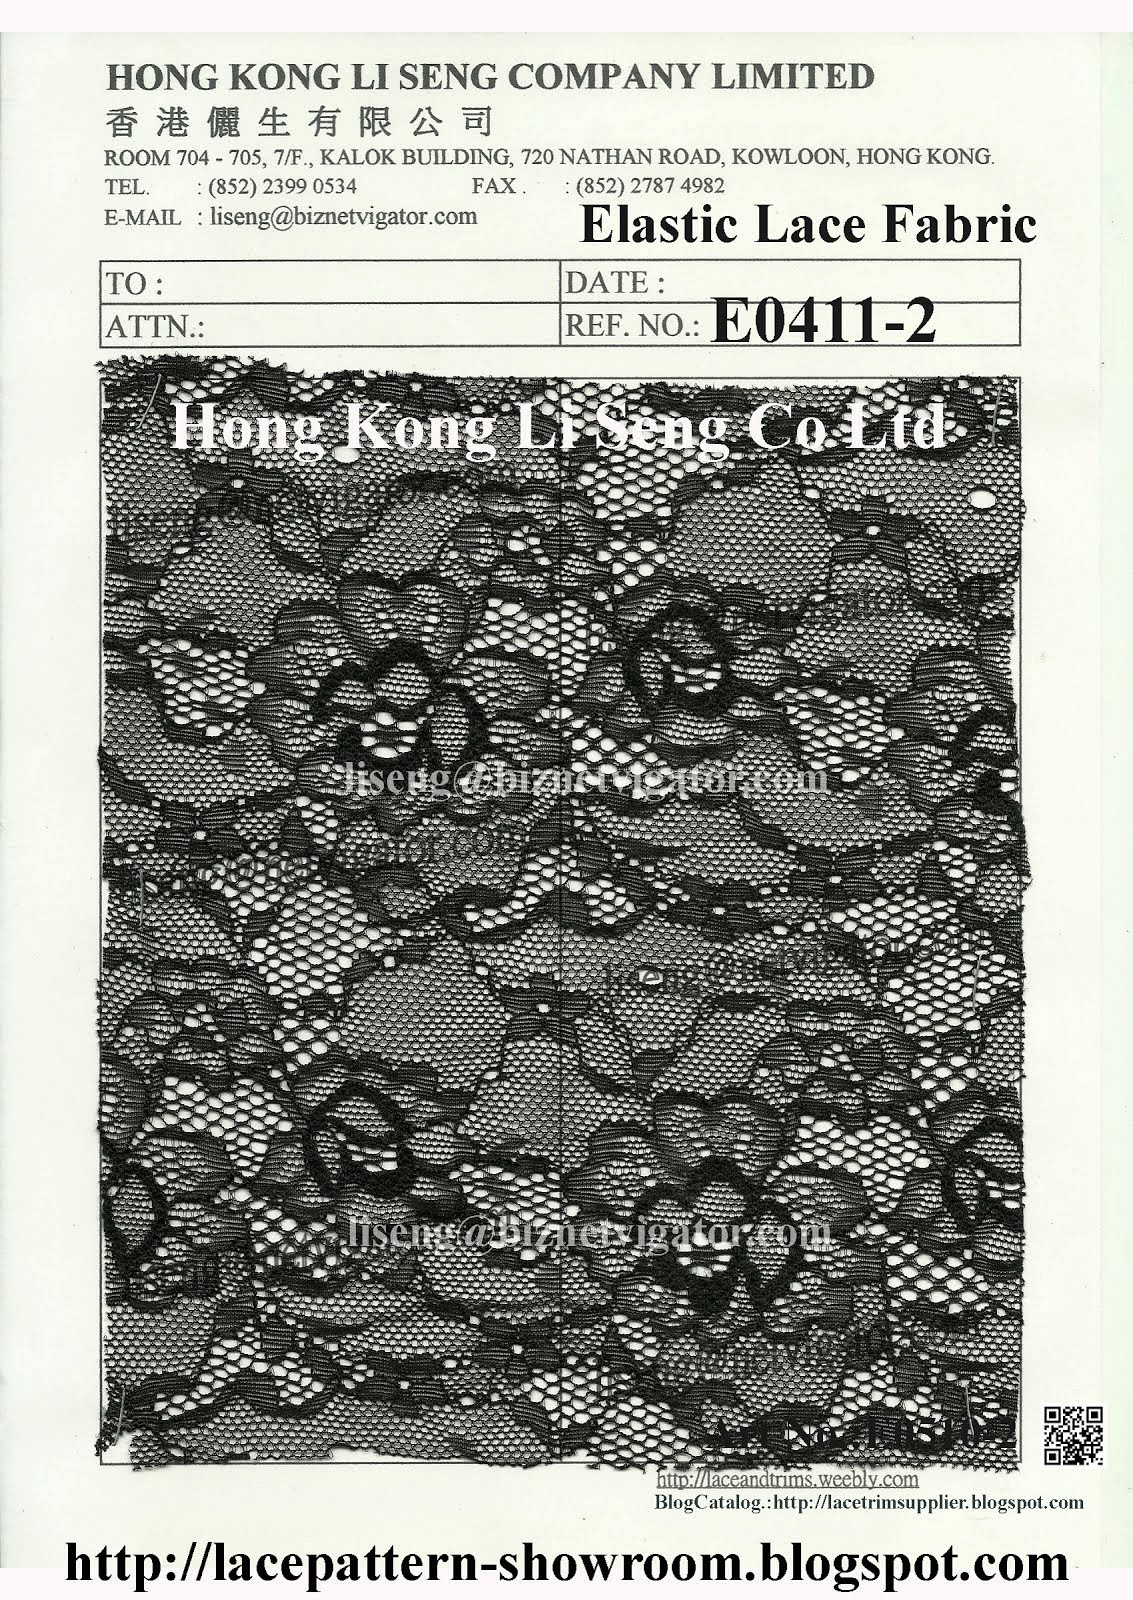 Elastic Lace Fabric Manufacturer - Hong Kong Li Seng Co Ltd